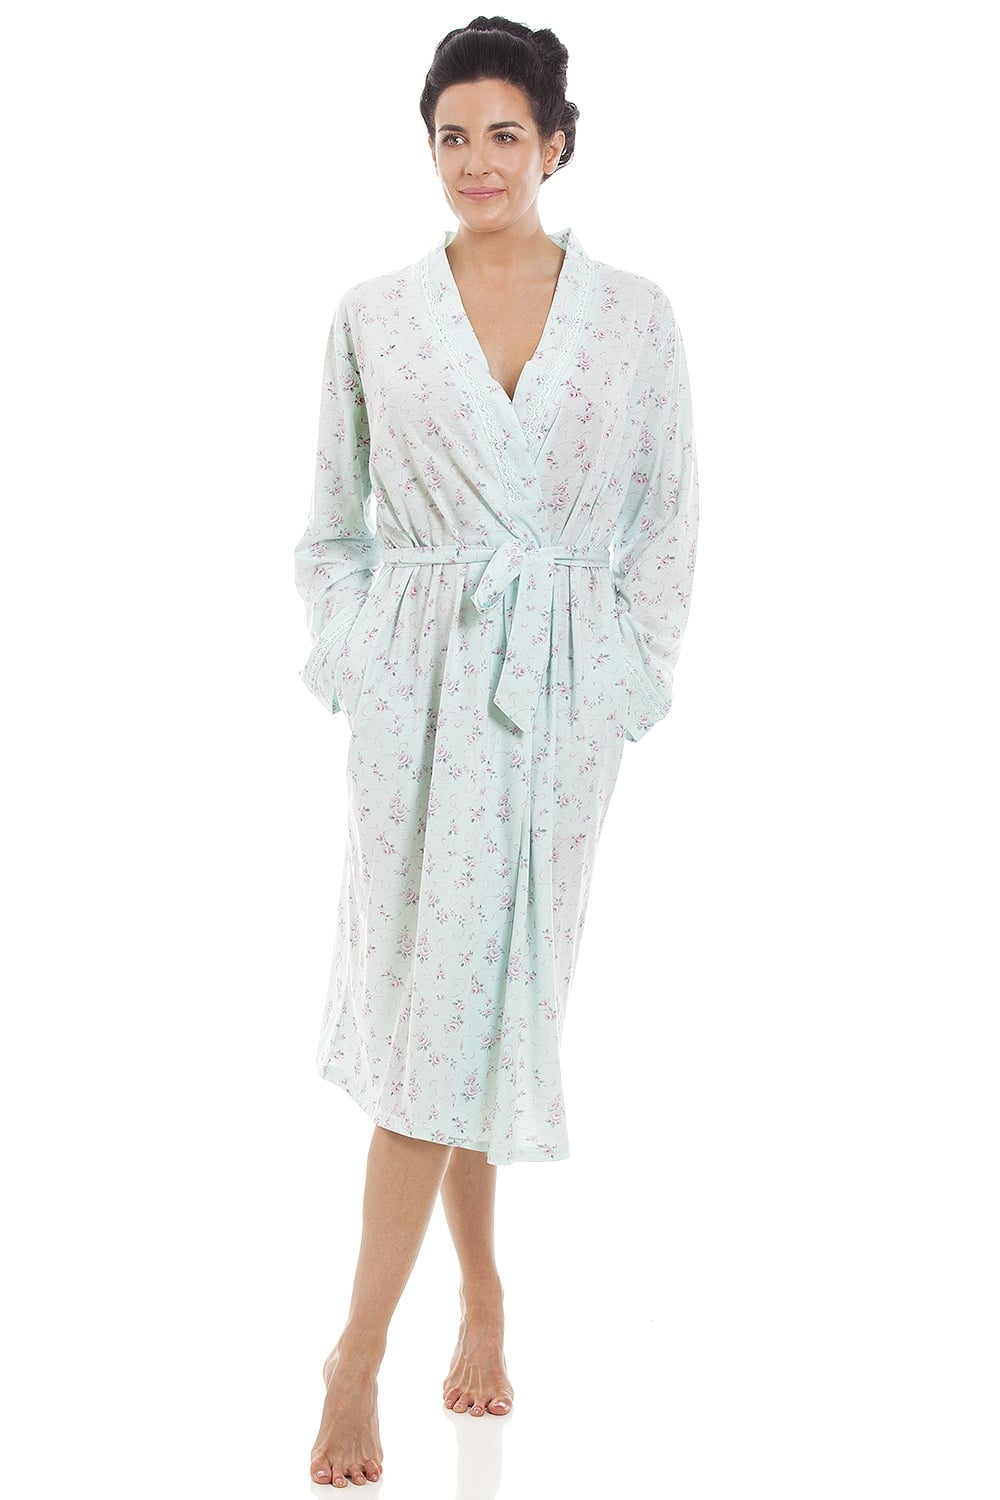 52faa894ab8 Camille Ladies Mint Floral Print Jersey Knit Cotton Dressing Gown